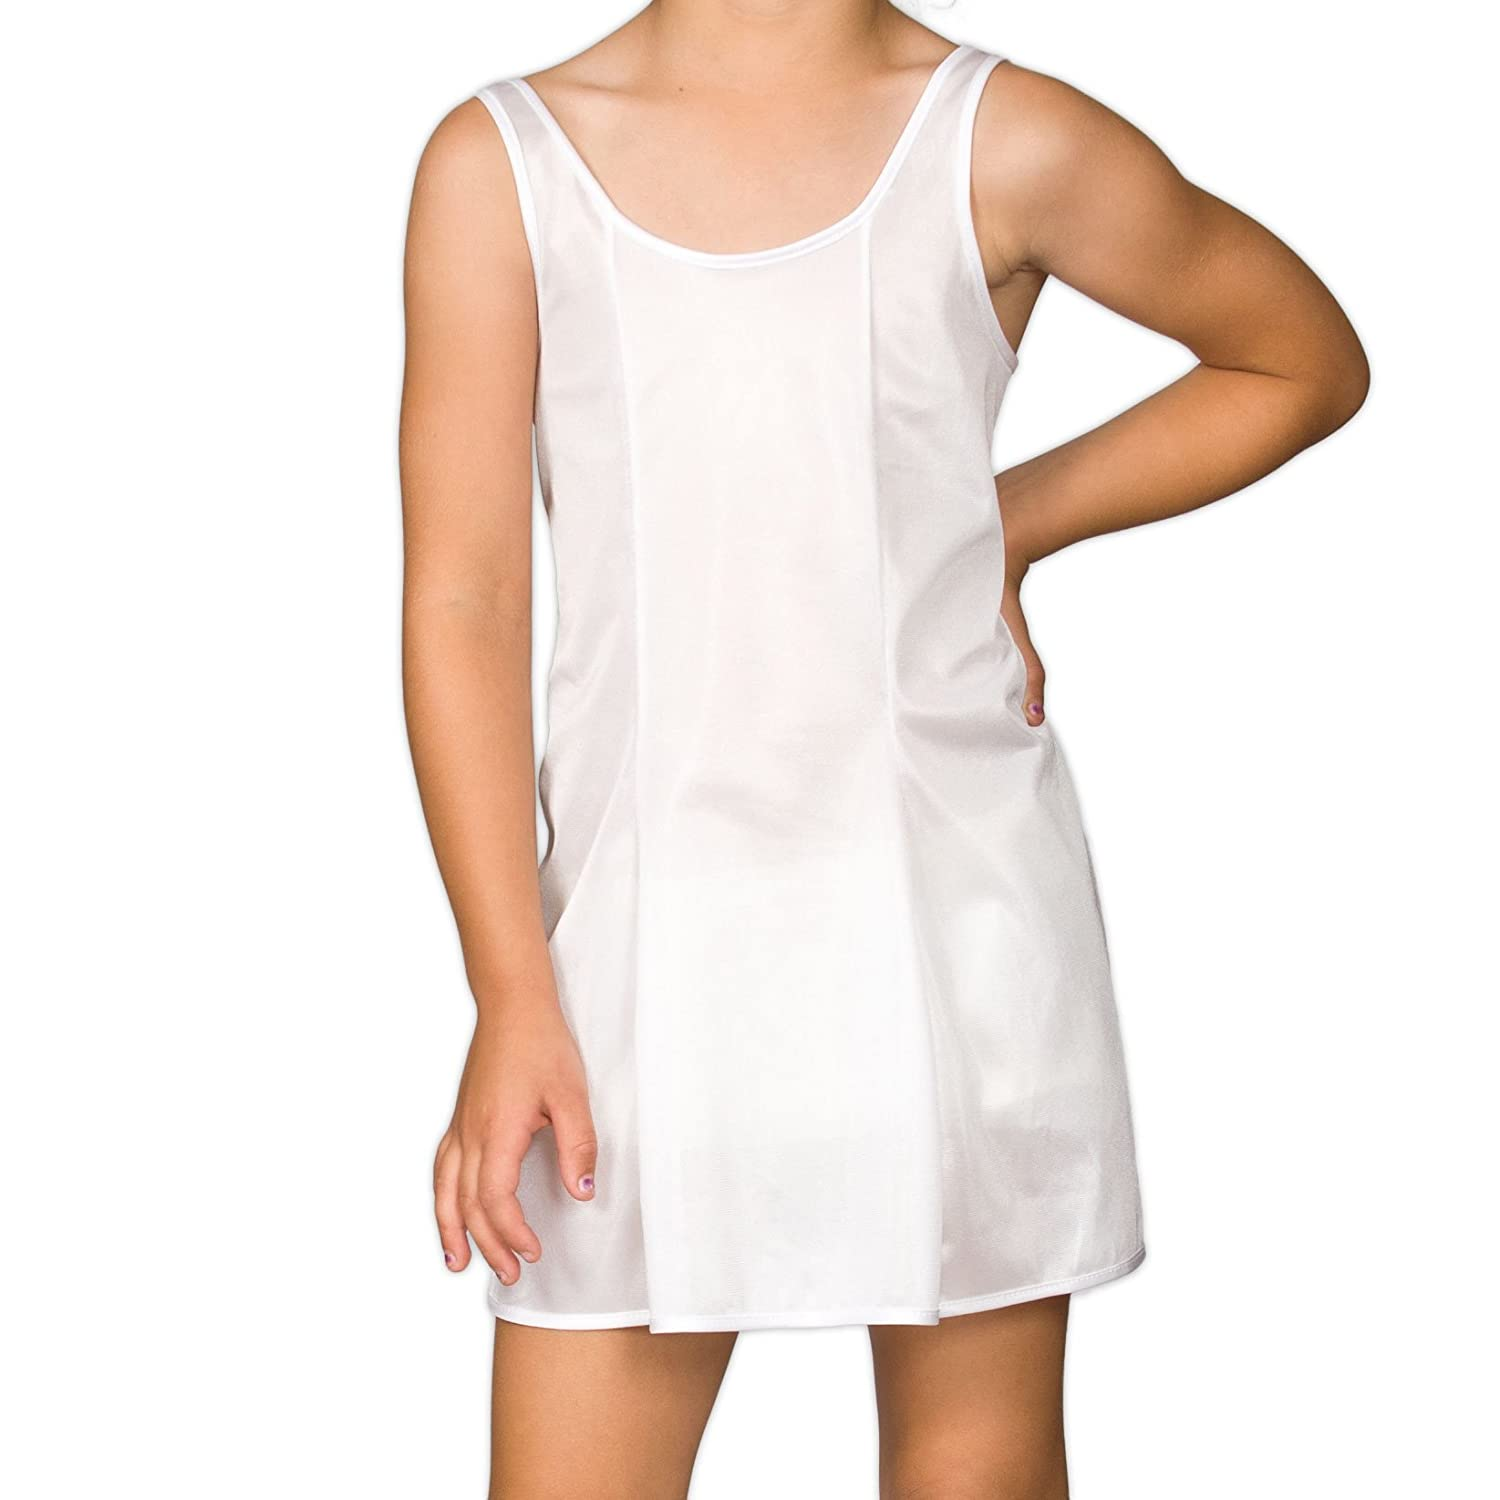 I.C. Collections Big Girls White Sleek Nylon Slip, 10 New ICM 000420-WHC